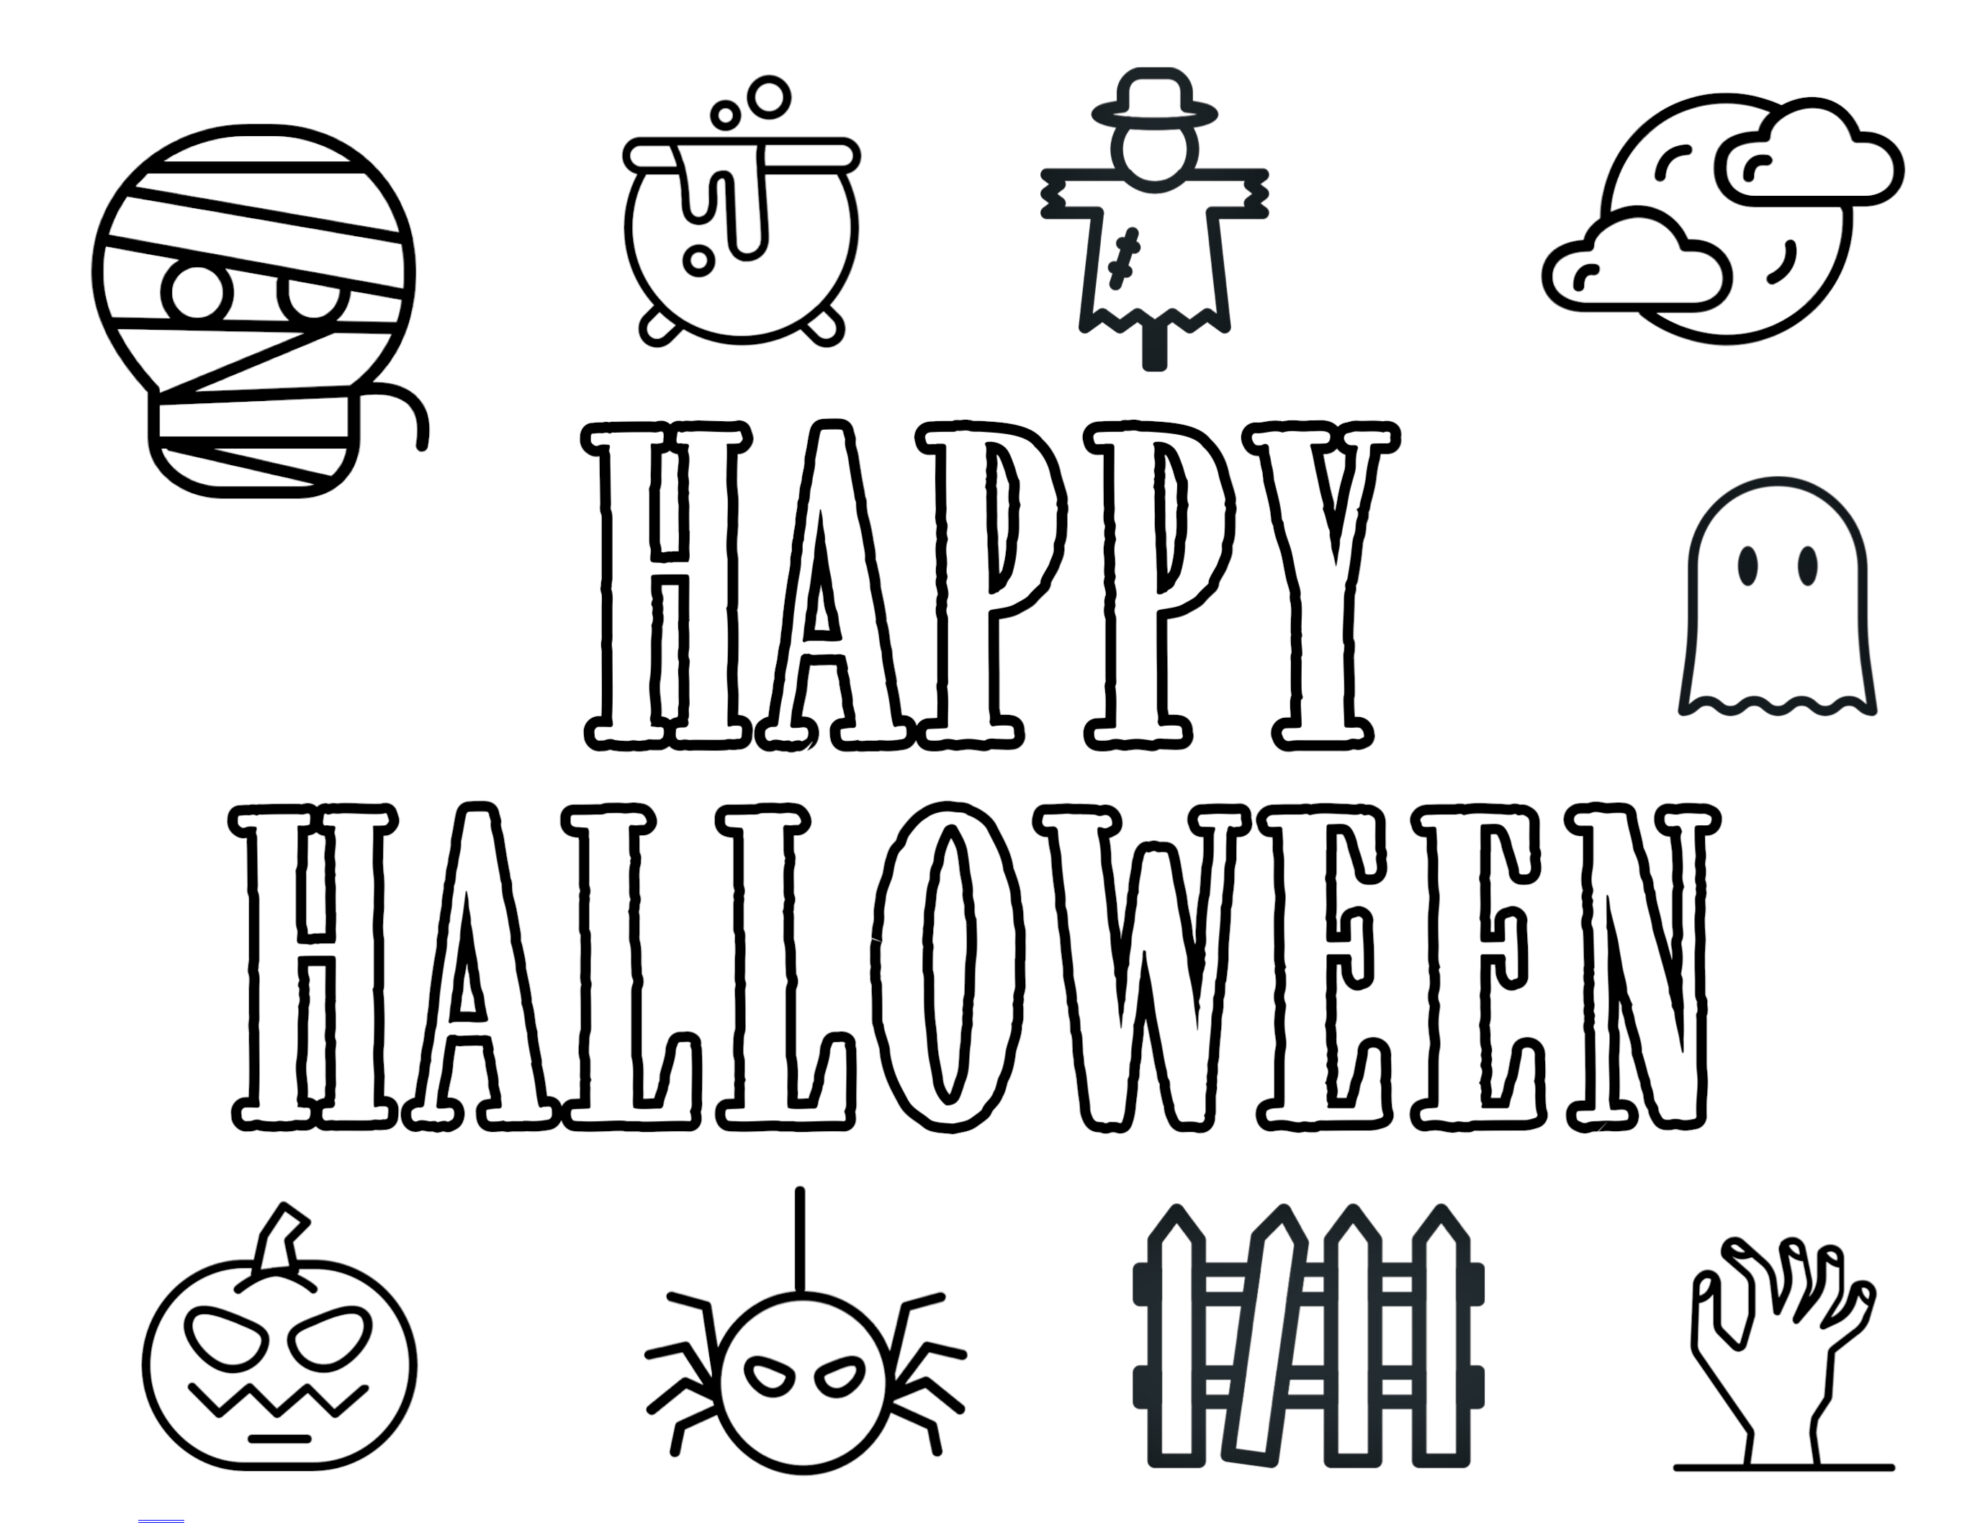 Printable Holloween Pictures That are Influential | Sherry ...